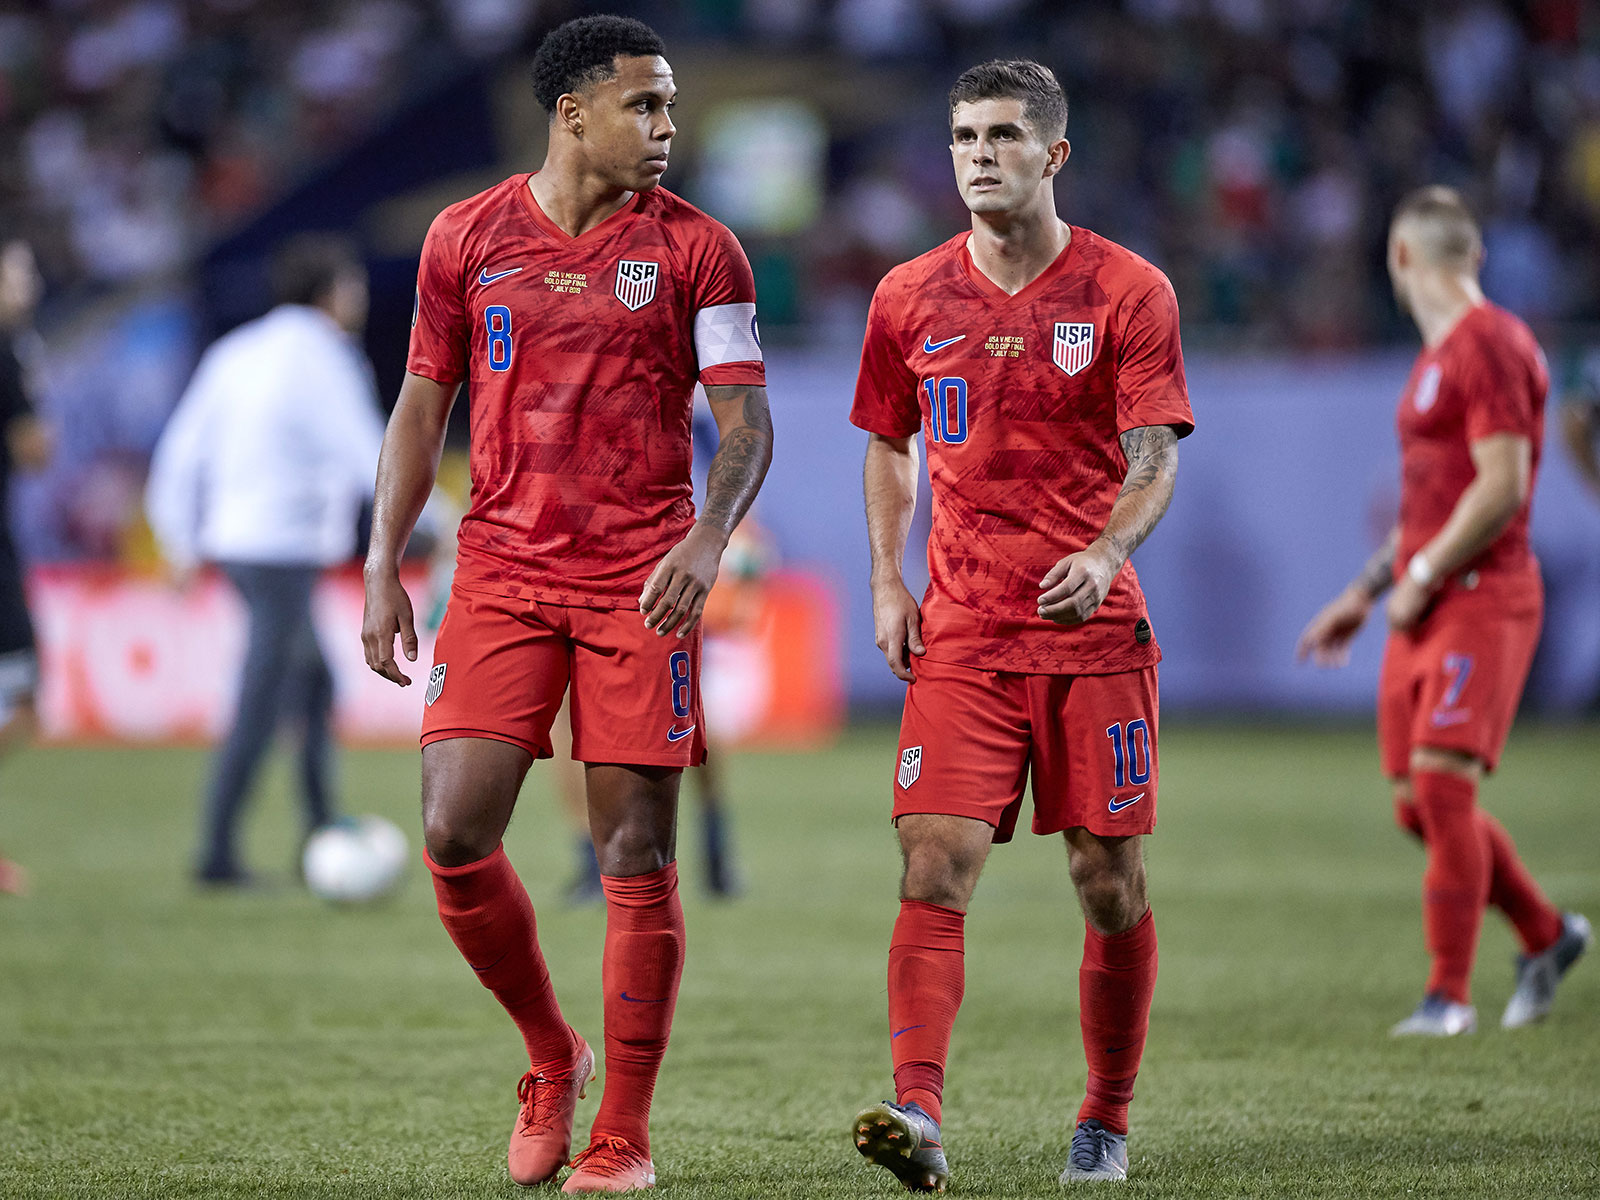 Weston McKennie and Christian Pulisic won't be available for the USA vs. Uruguay